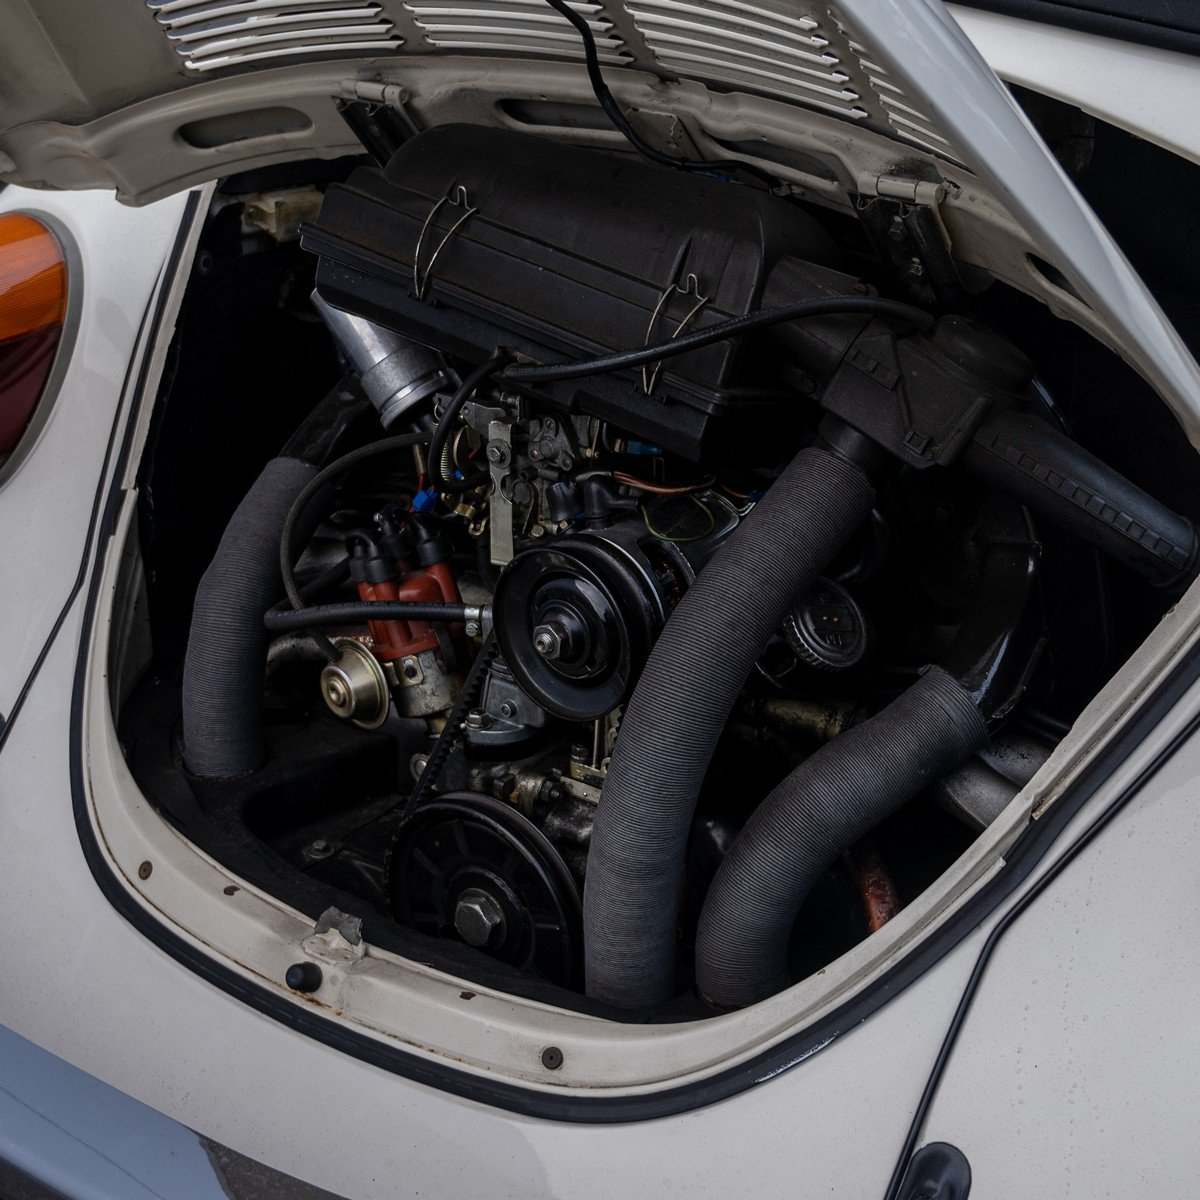 1973 Volkswagen Beetle Type 1303 Cabriolet For Sale (picture 37 of 39)